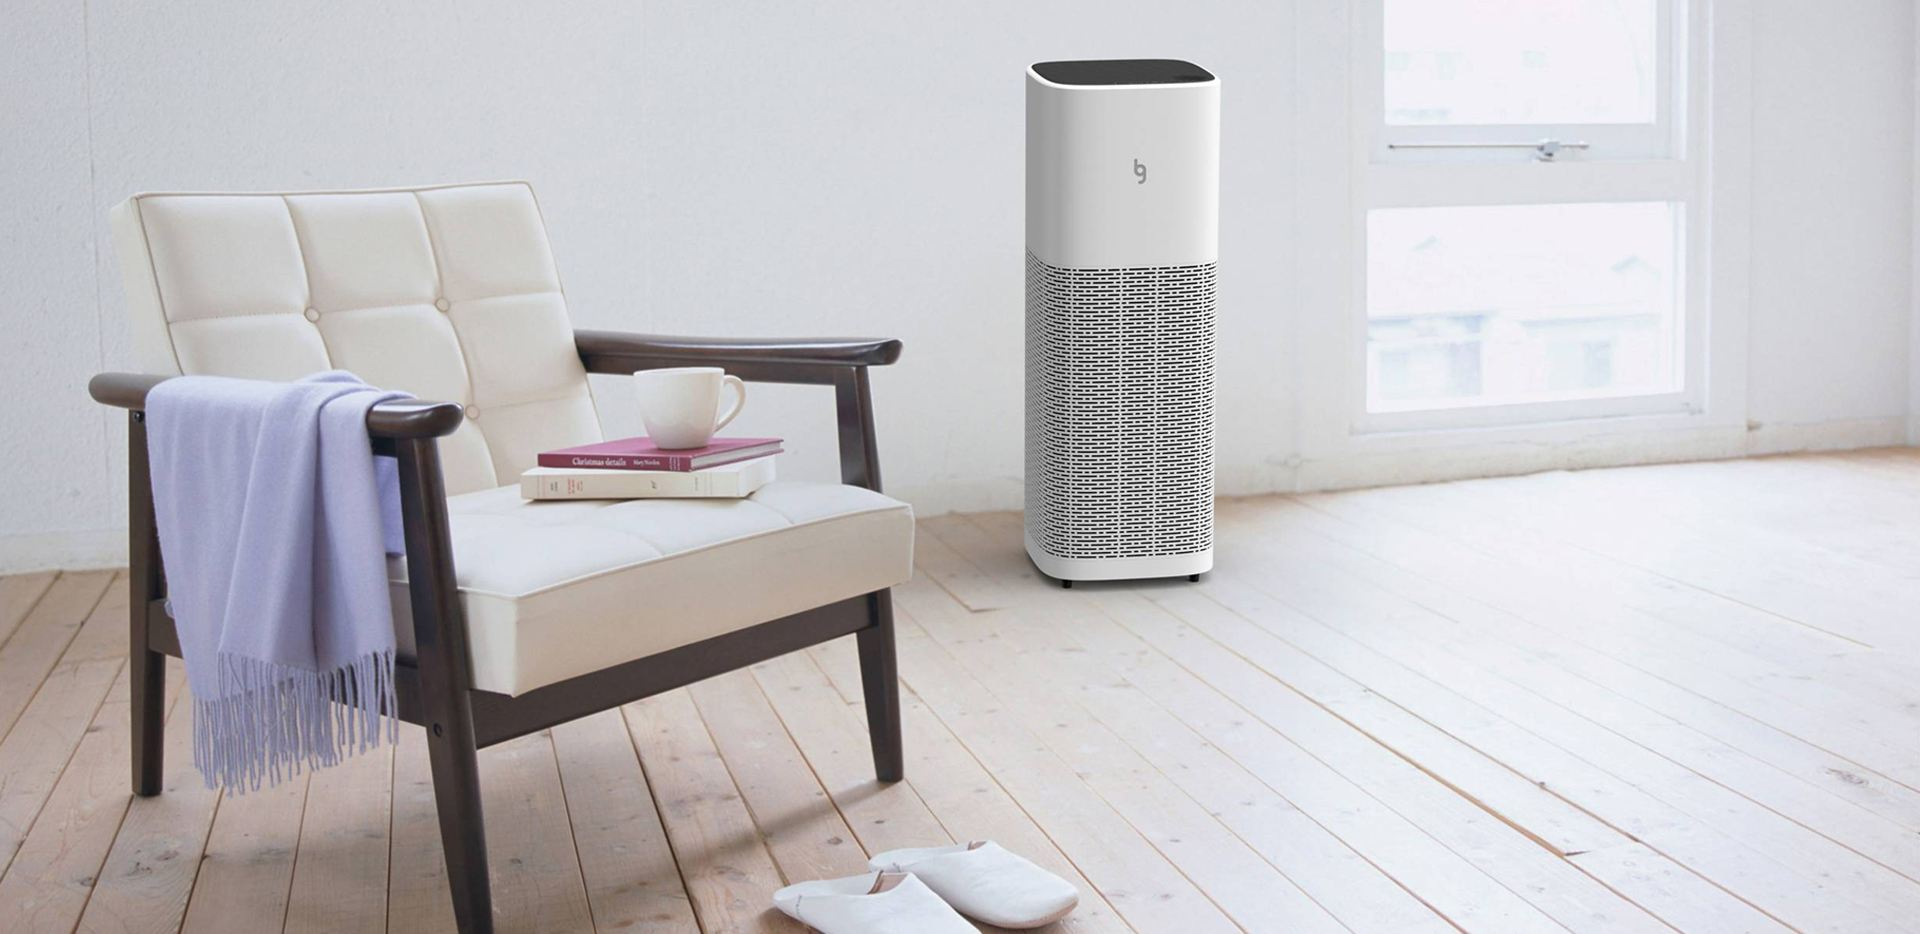 What sensors are used in the air purifier